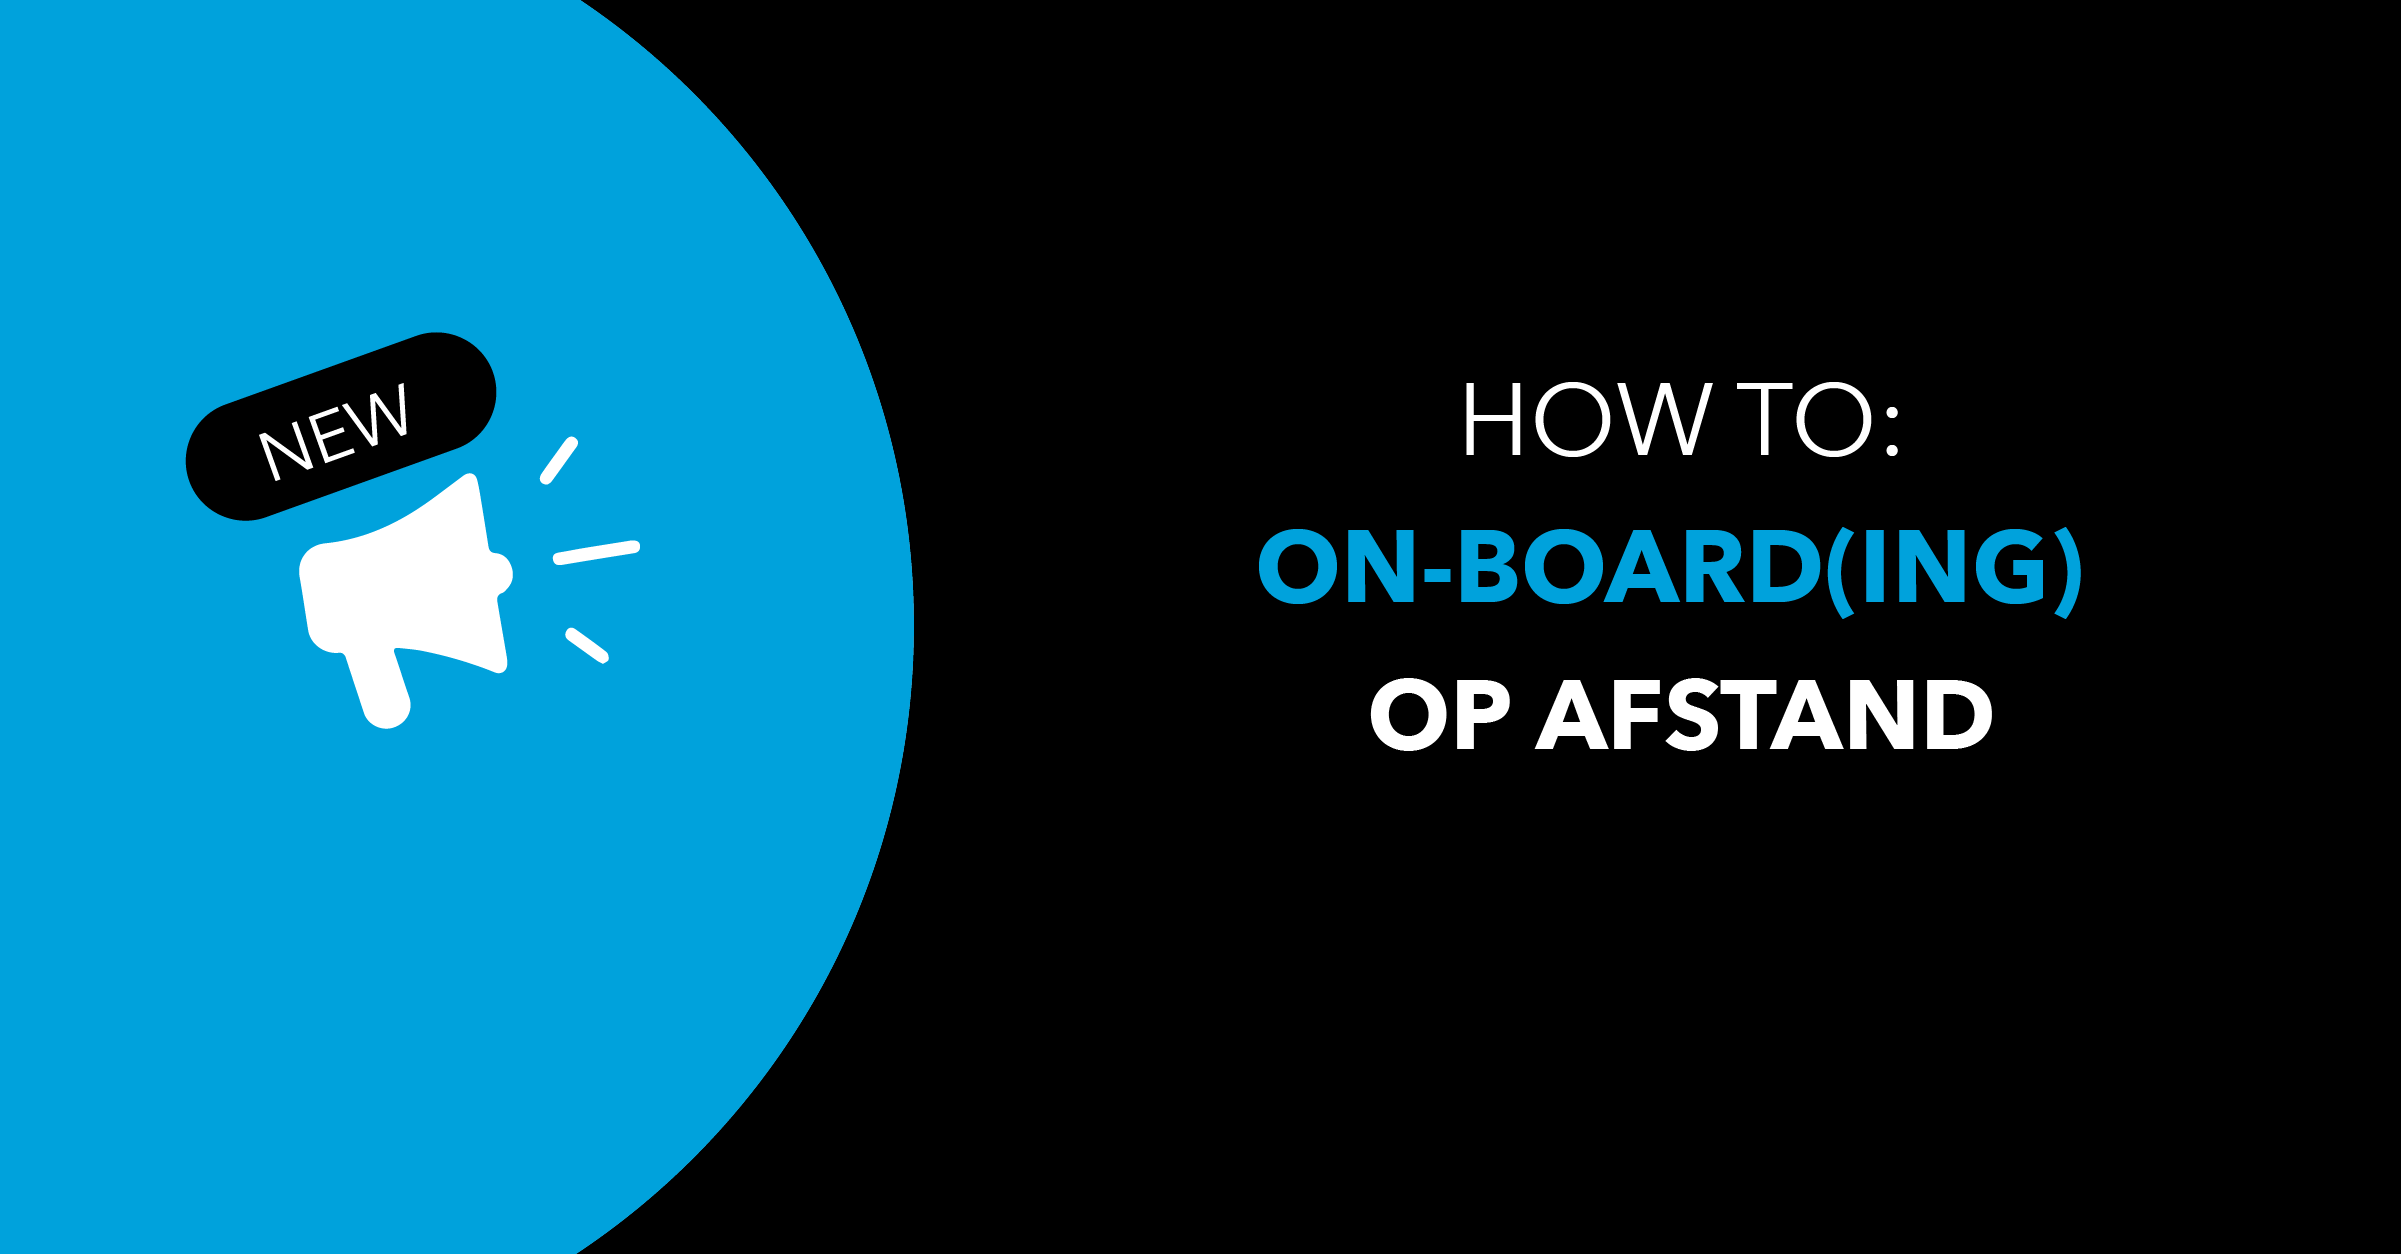 How-to-on-boarding-op-afstand